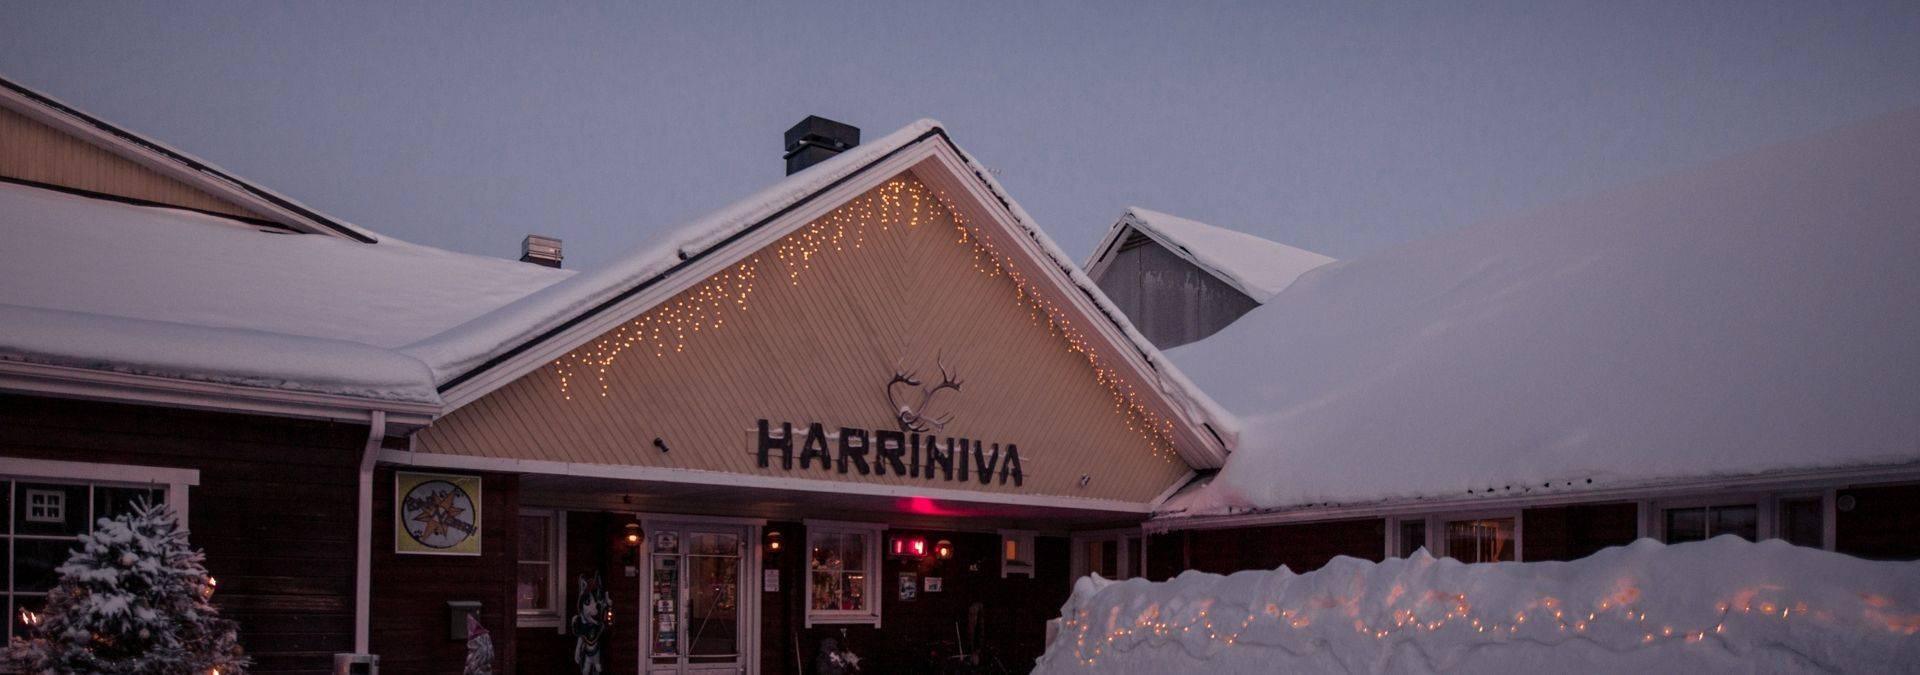 Harriniva Outside 12    Credit Emmi KäHköNen   Harriniva Hotels & Safaris